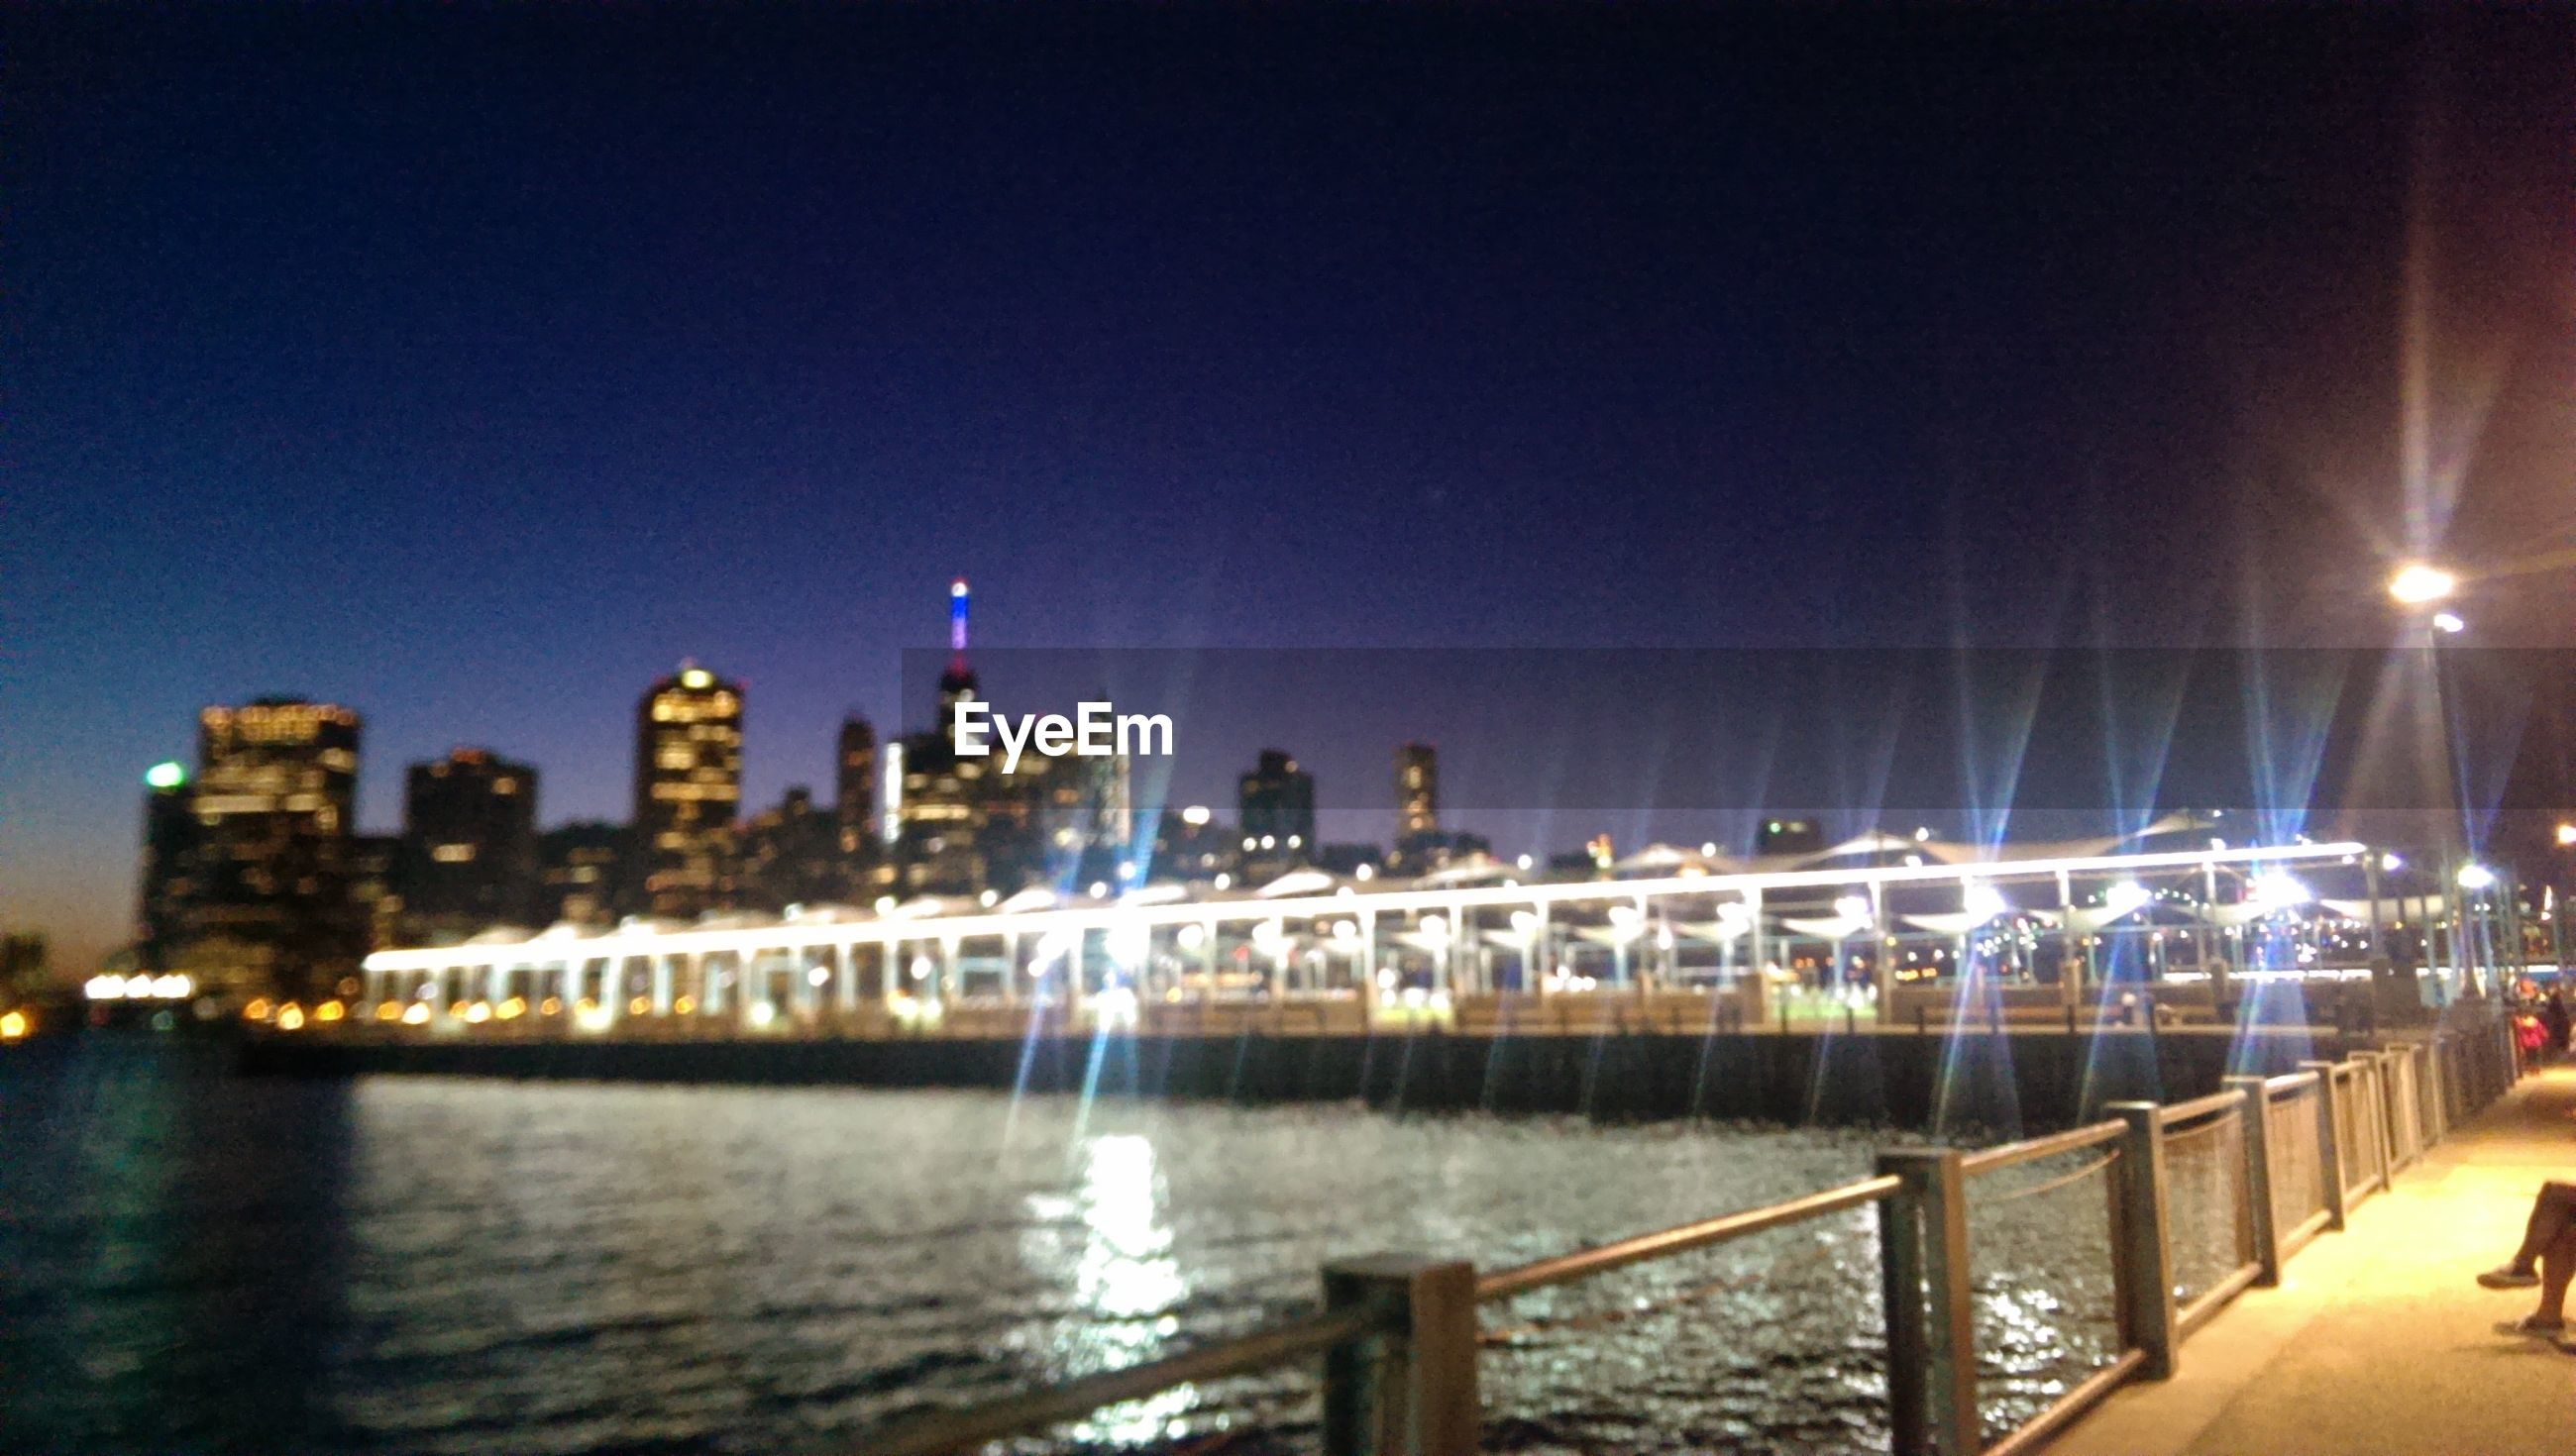 illuminated, night, architecture, water, built structure, building exterior, city, river, clear sky, reflection, cityscape, waterfront, skyscraper, railing, lighting equipment, modern, copy space, urban skyline, travel destinations, blue